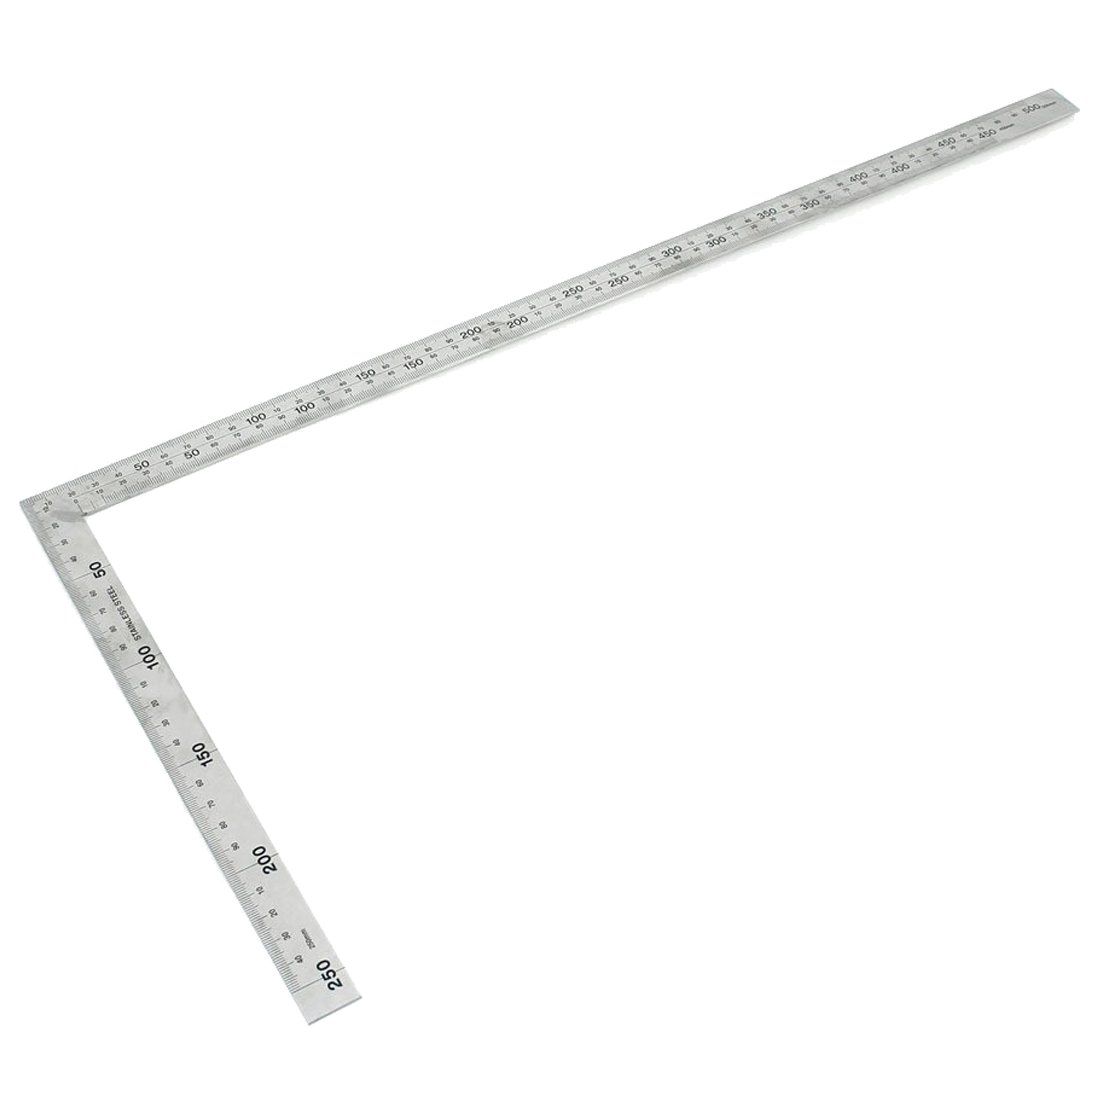 SODIAL(R) Stainless Steel 25x50cm 90 Degree Angle Try Square Ruler Measure Tool